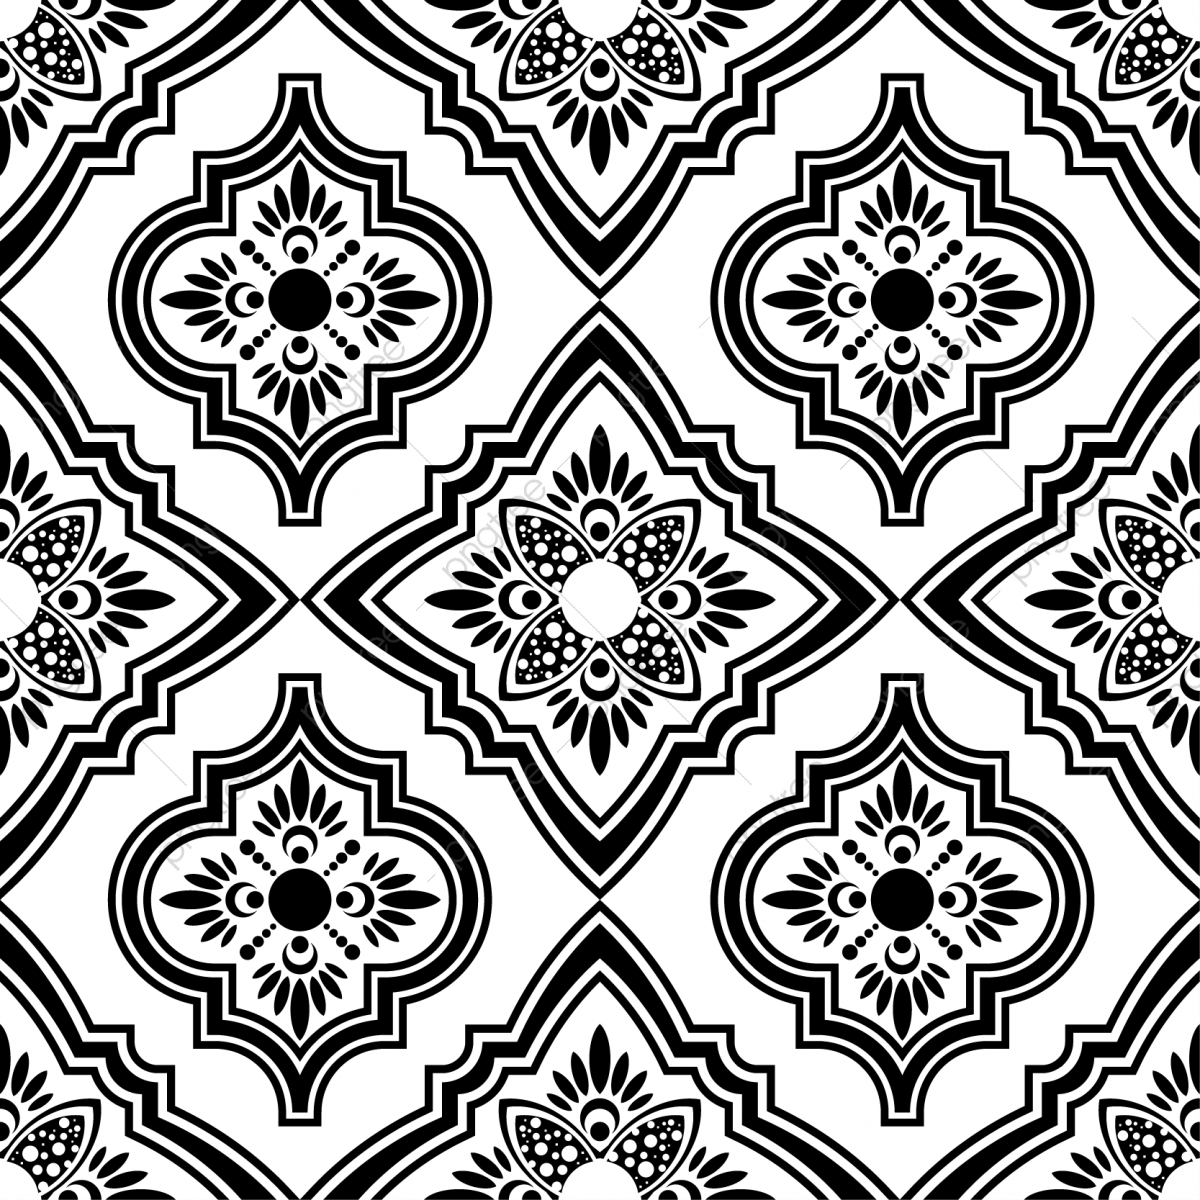 Persian Ethnic Seamless Pattern Square Design With Turkish And